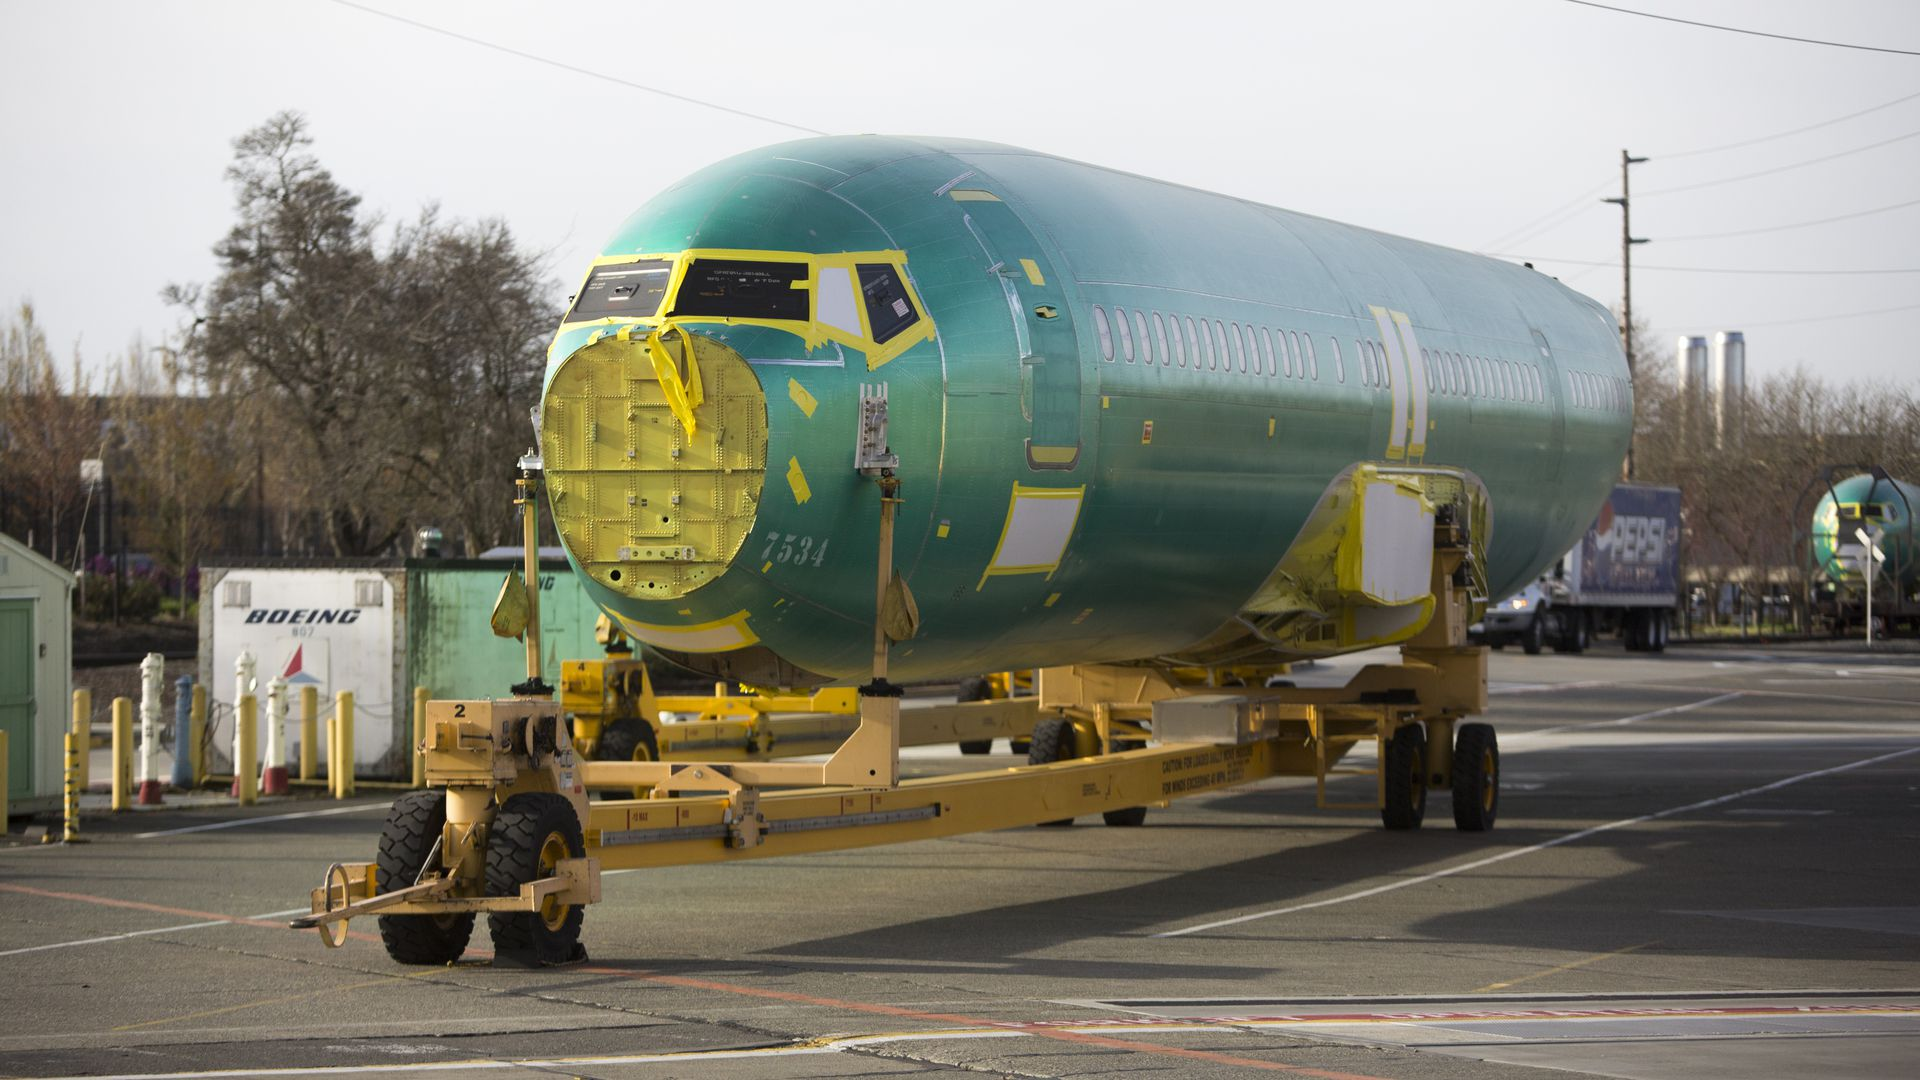 Boeing's profits slide after 737 MAX grounding